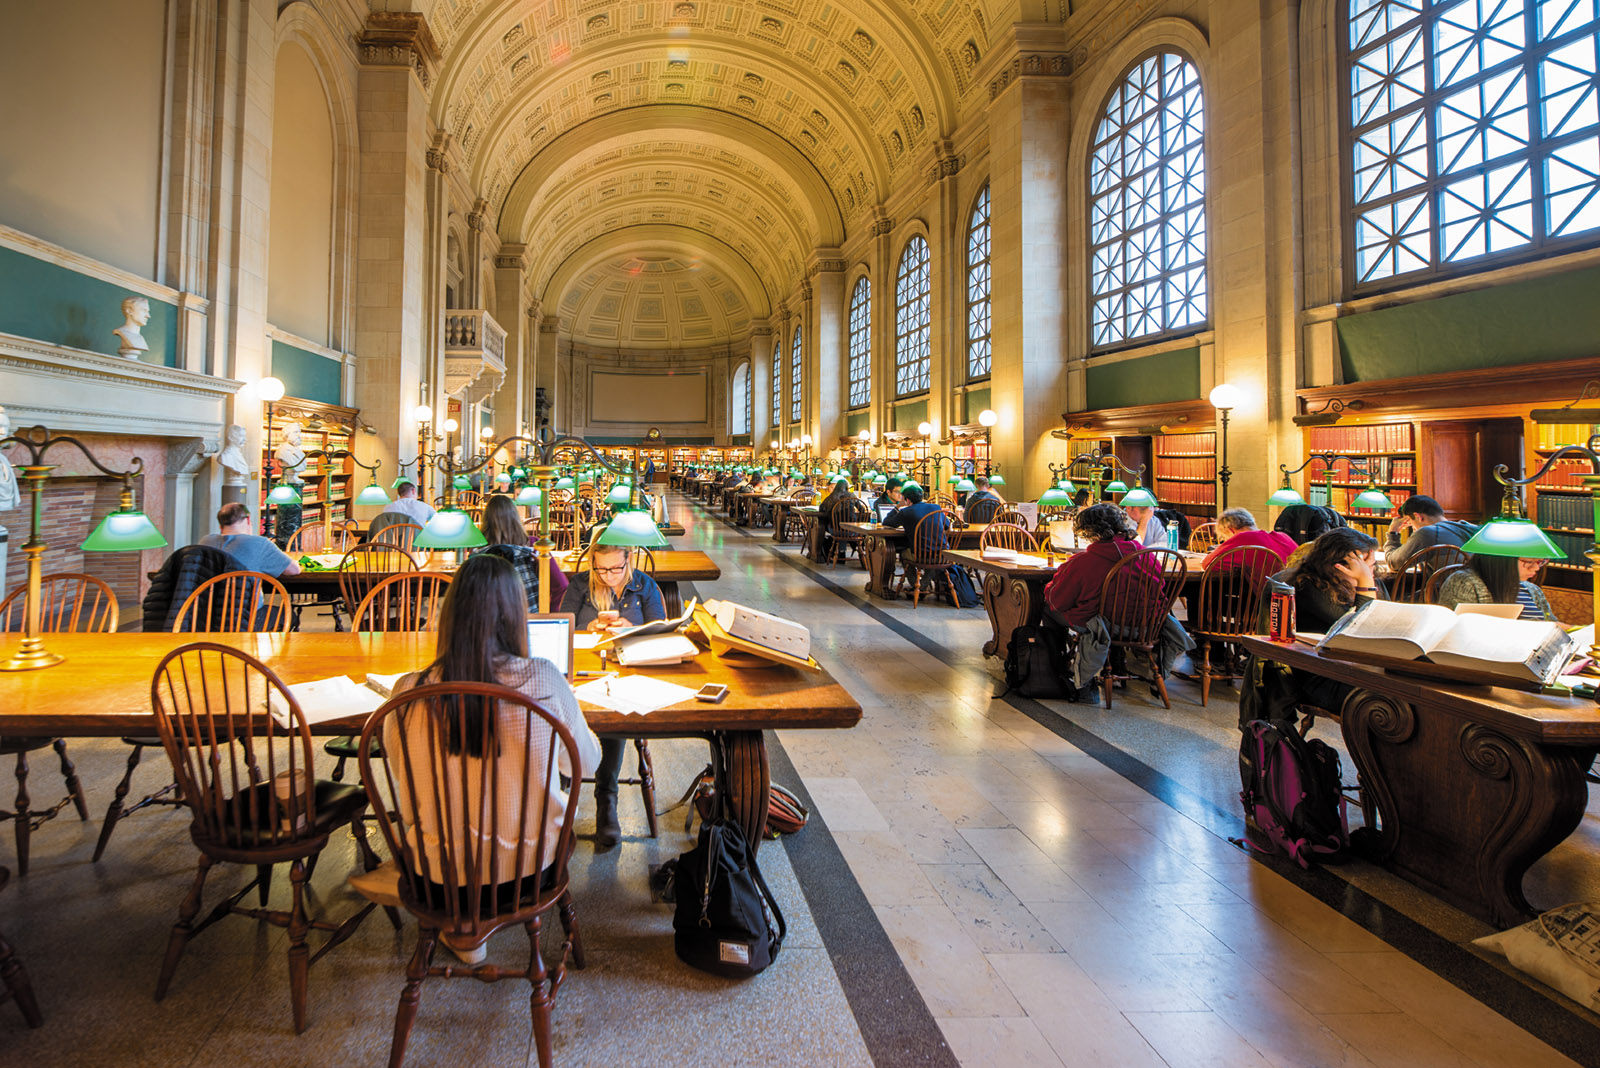 Bates Hall reading room, Boston Public Library, 2017